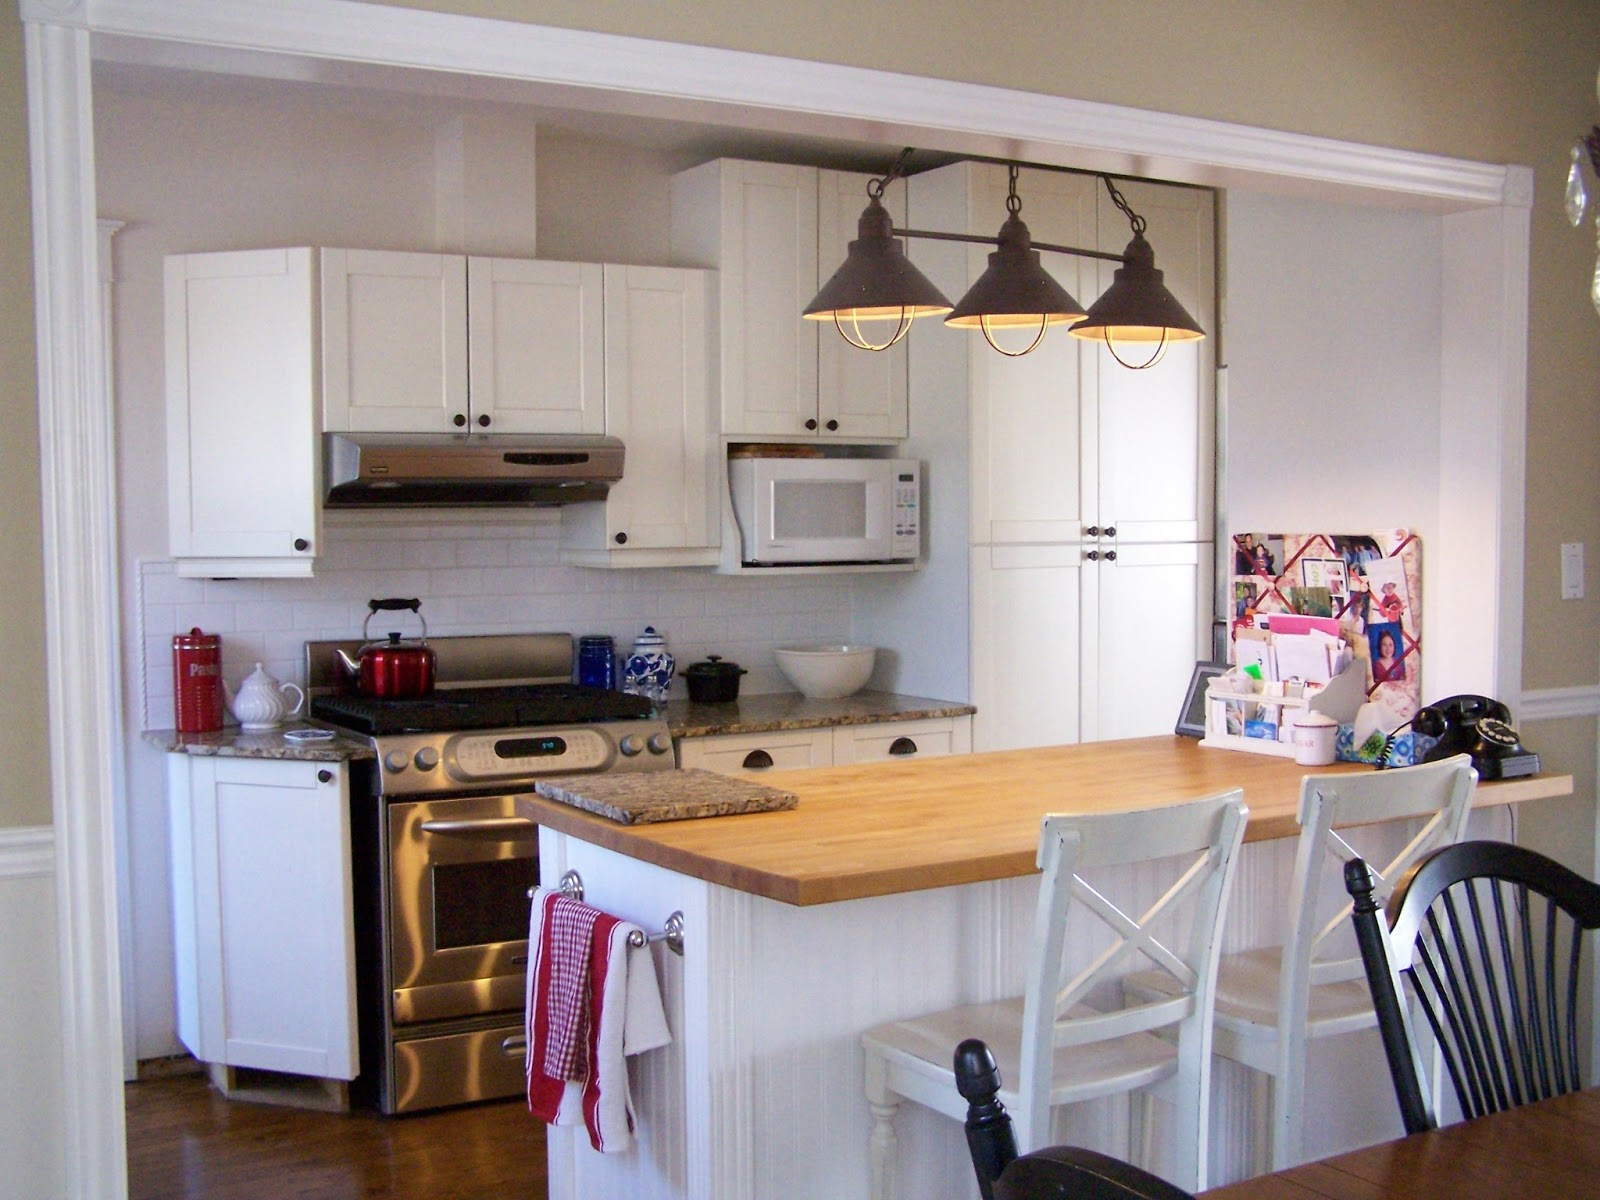 Delorme Designs: KITCHEN LIGHTING REVAMP